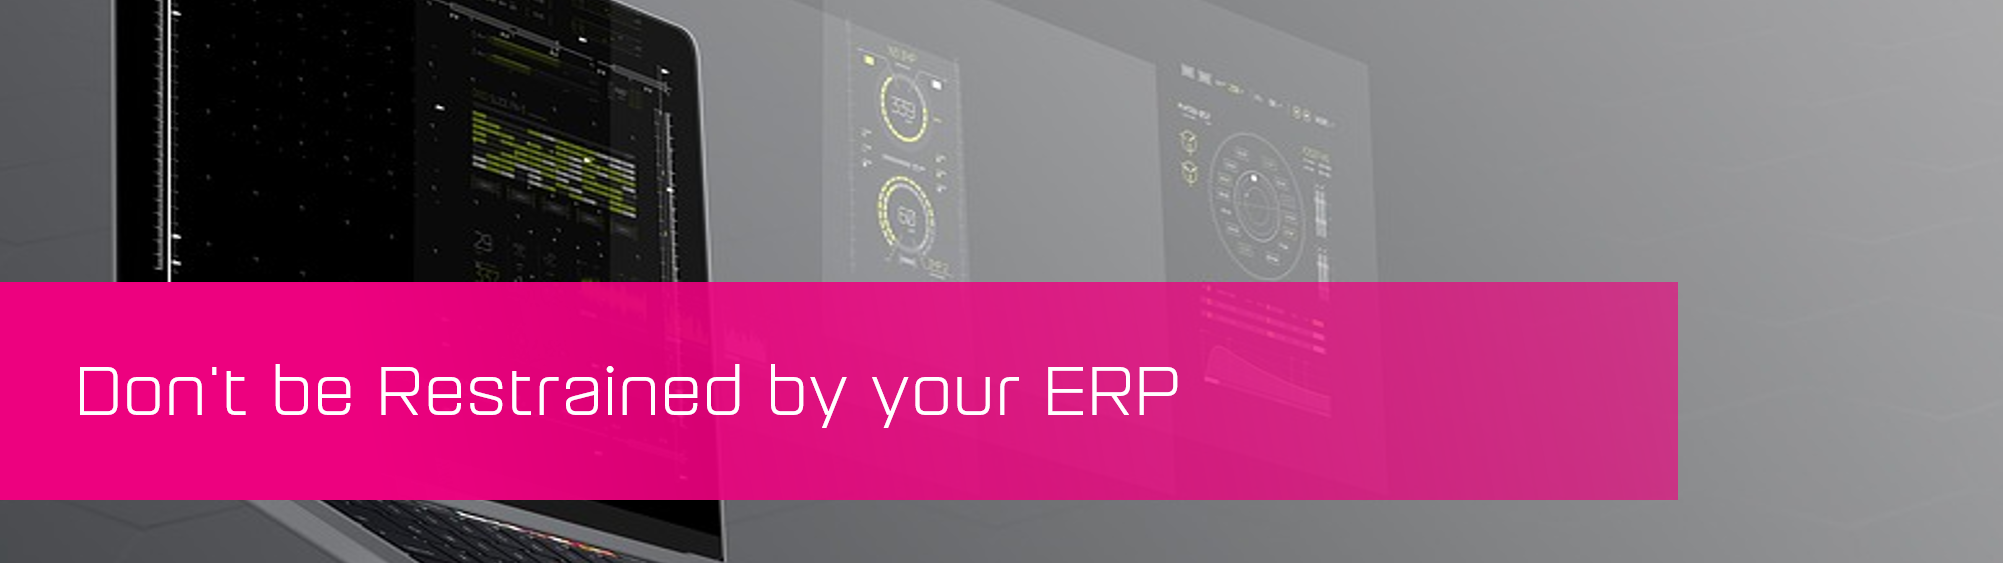 KCS SA - Blog - Dont be Restrained by your ERP